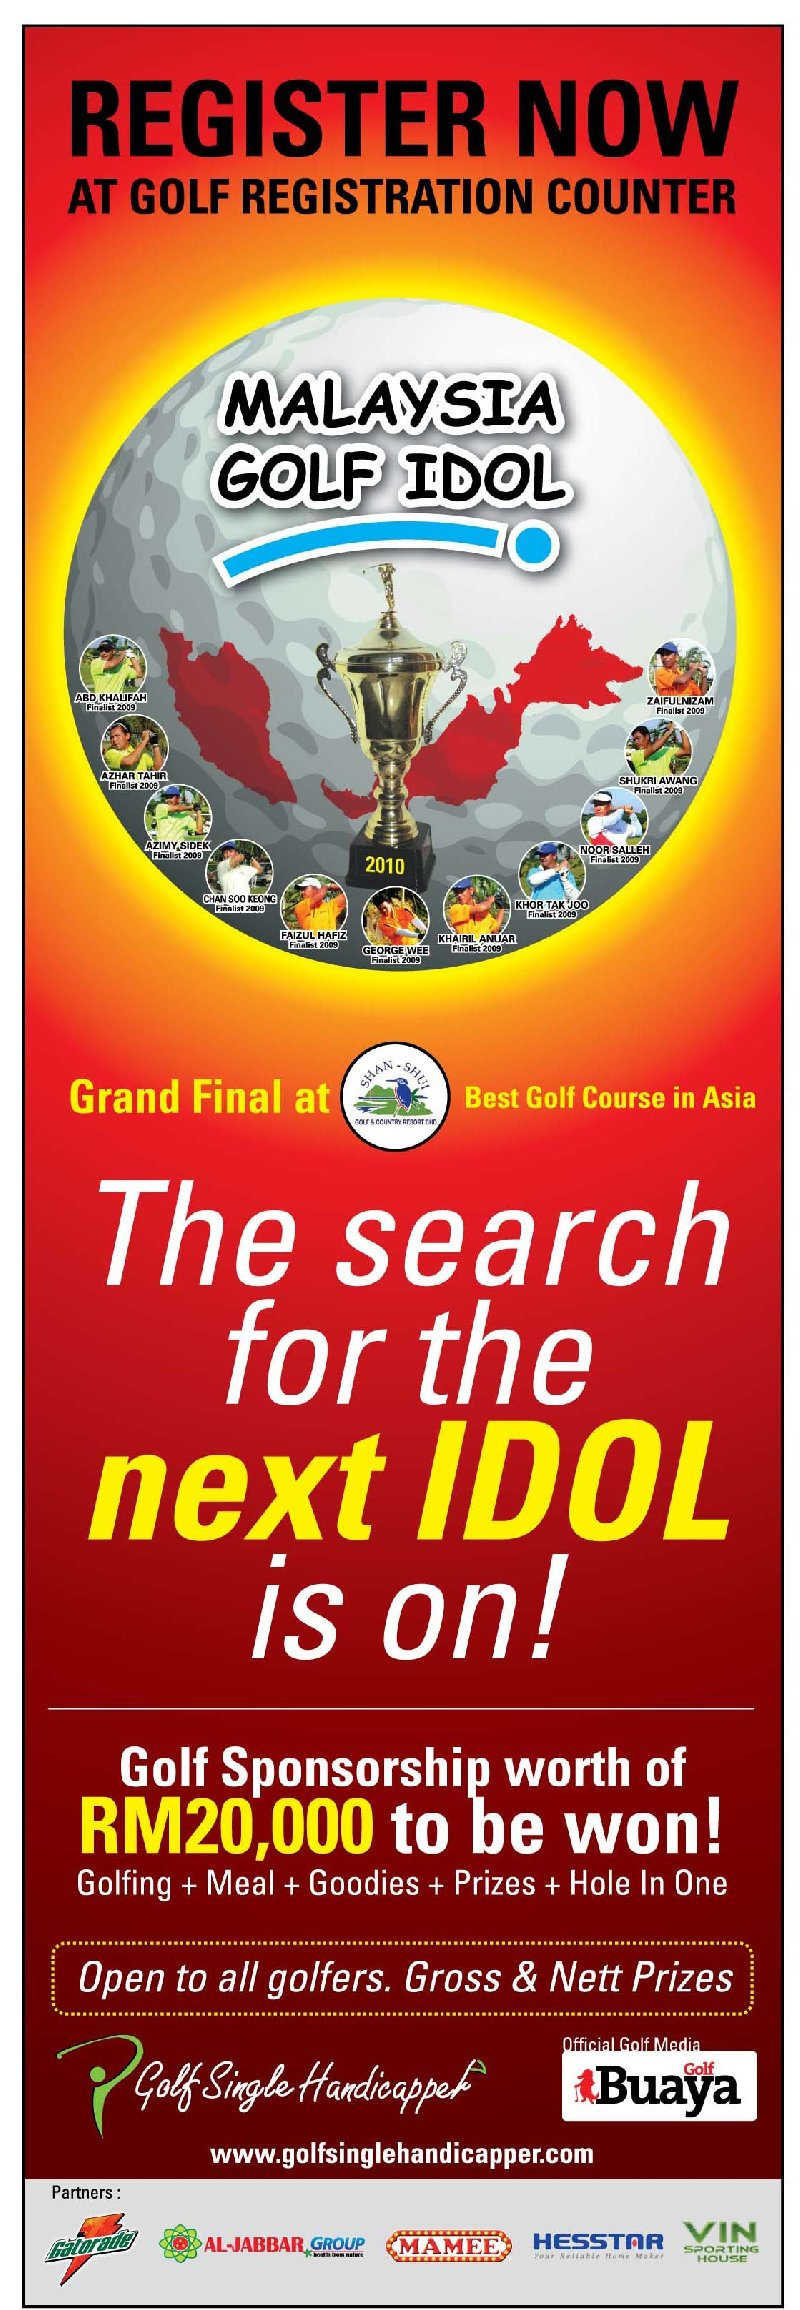 THE SEARCH FOR THE NEXT GOLF IDOL IS ON !!